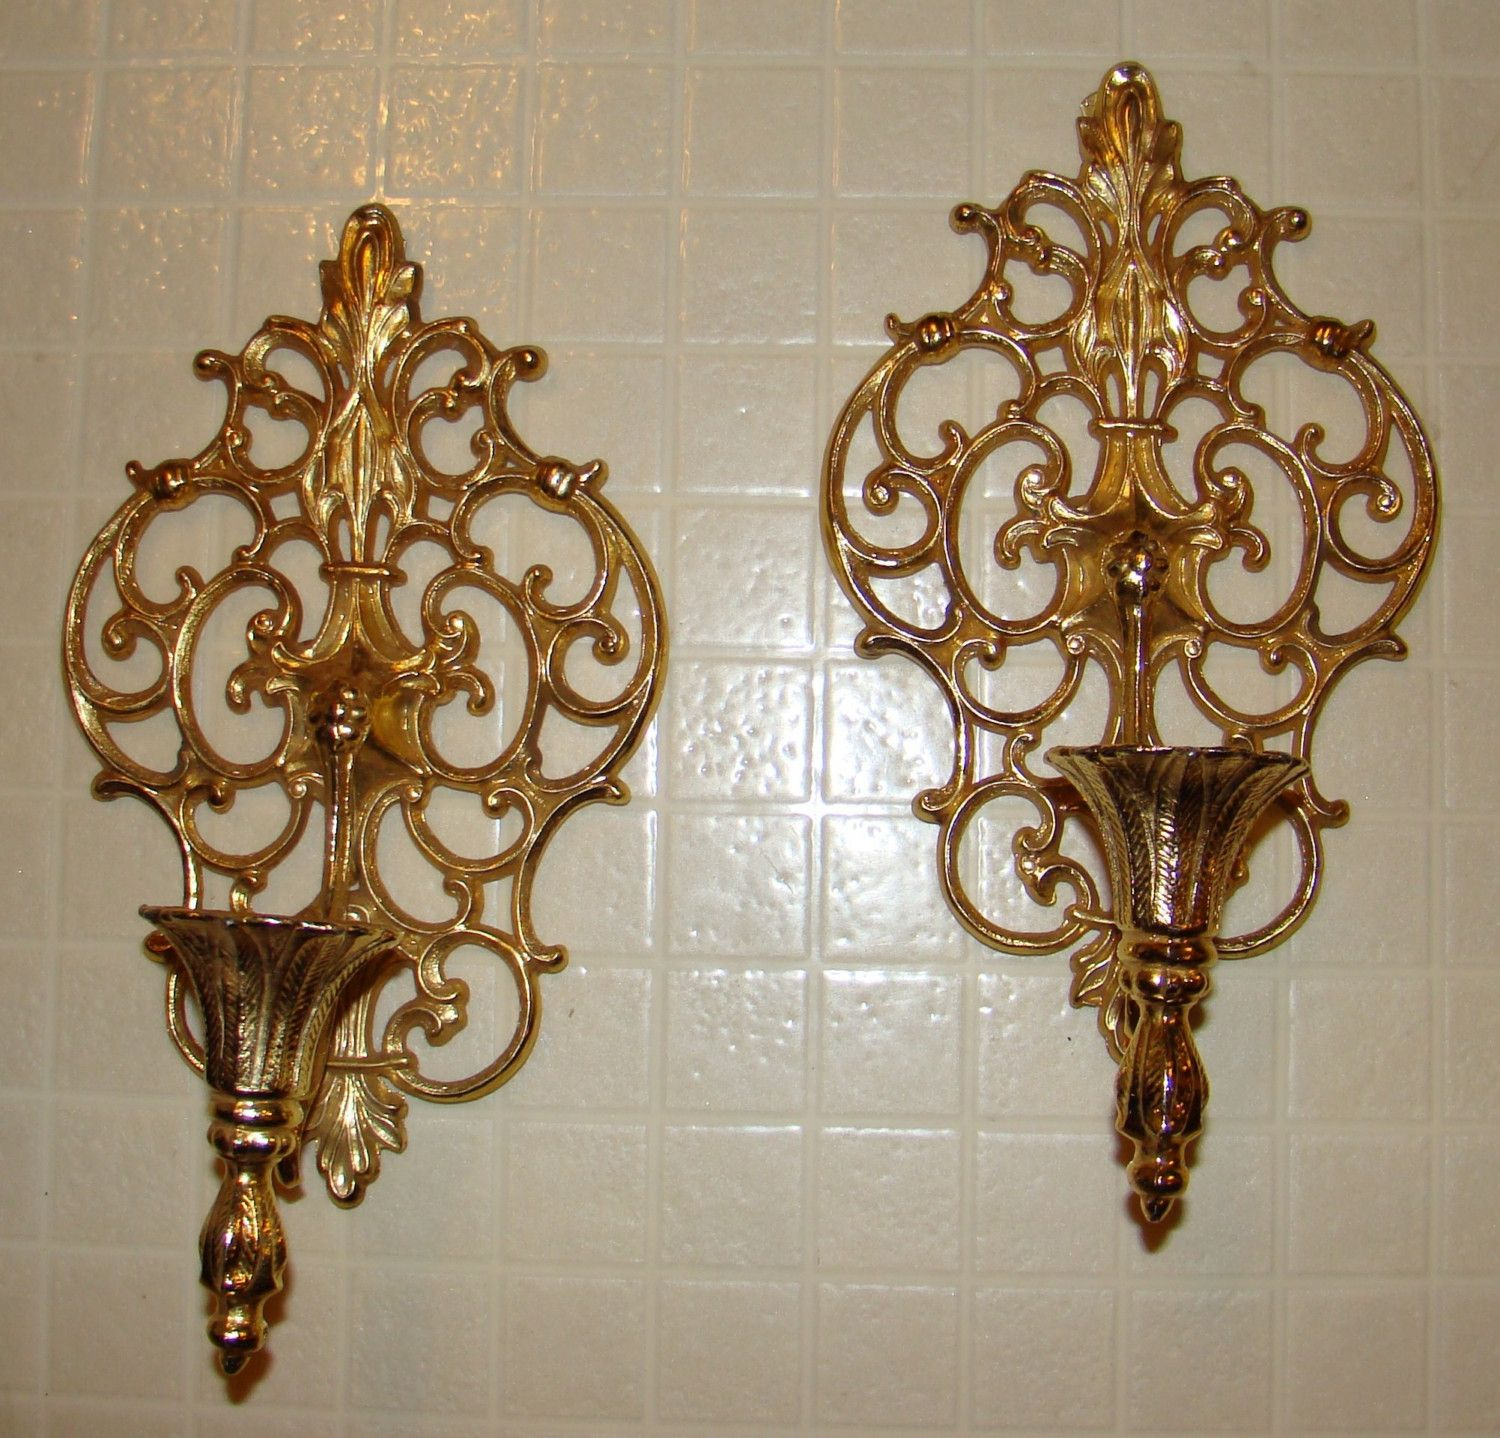 Candle wrought iron wall decorations gold candle sconces in pair for inspiring home lighting ideas or amipublicfo Images